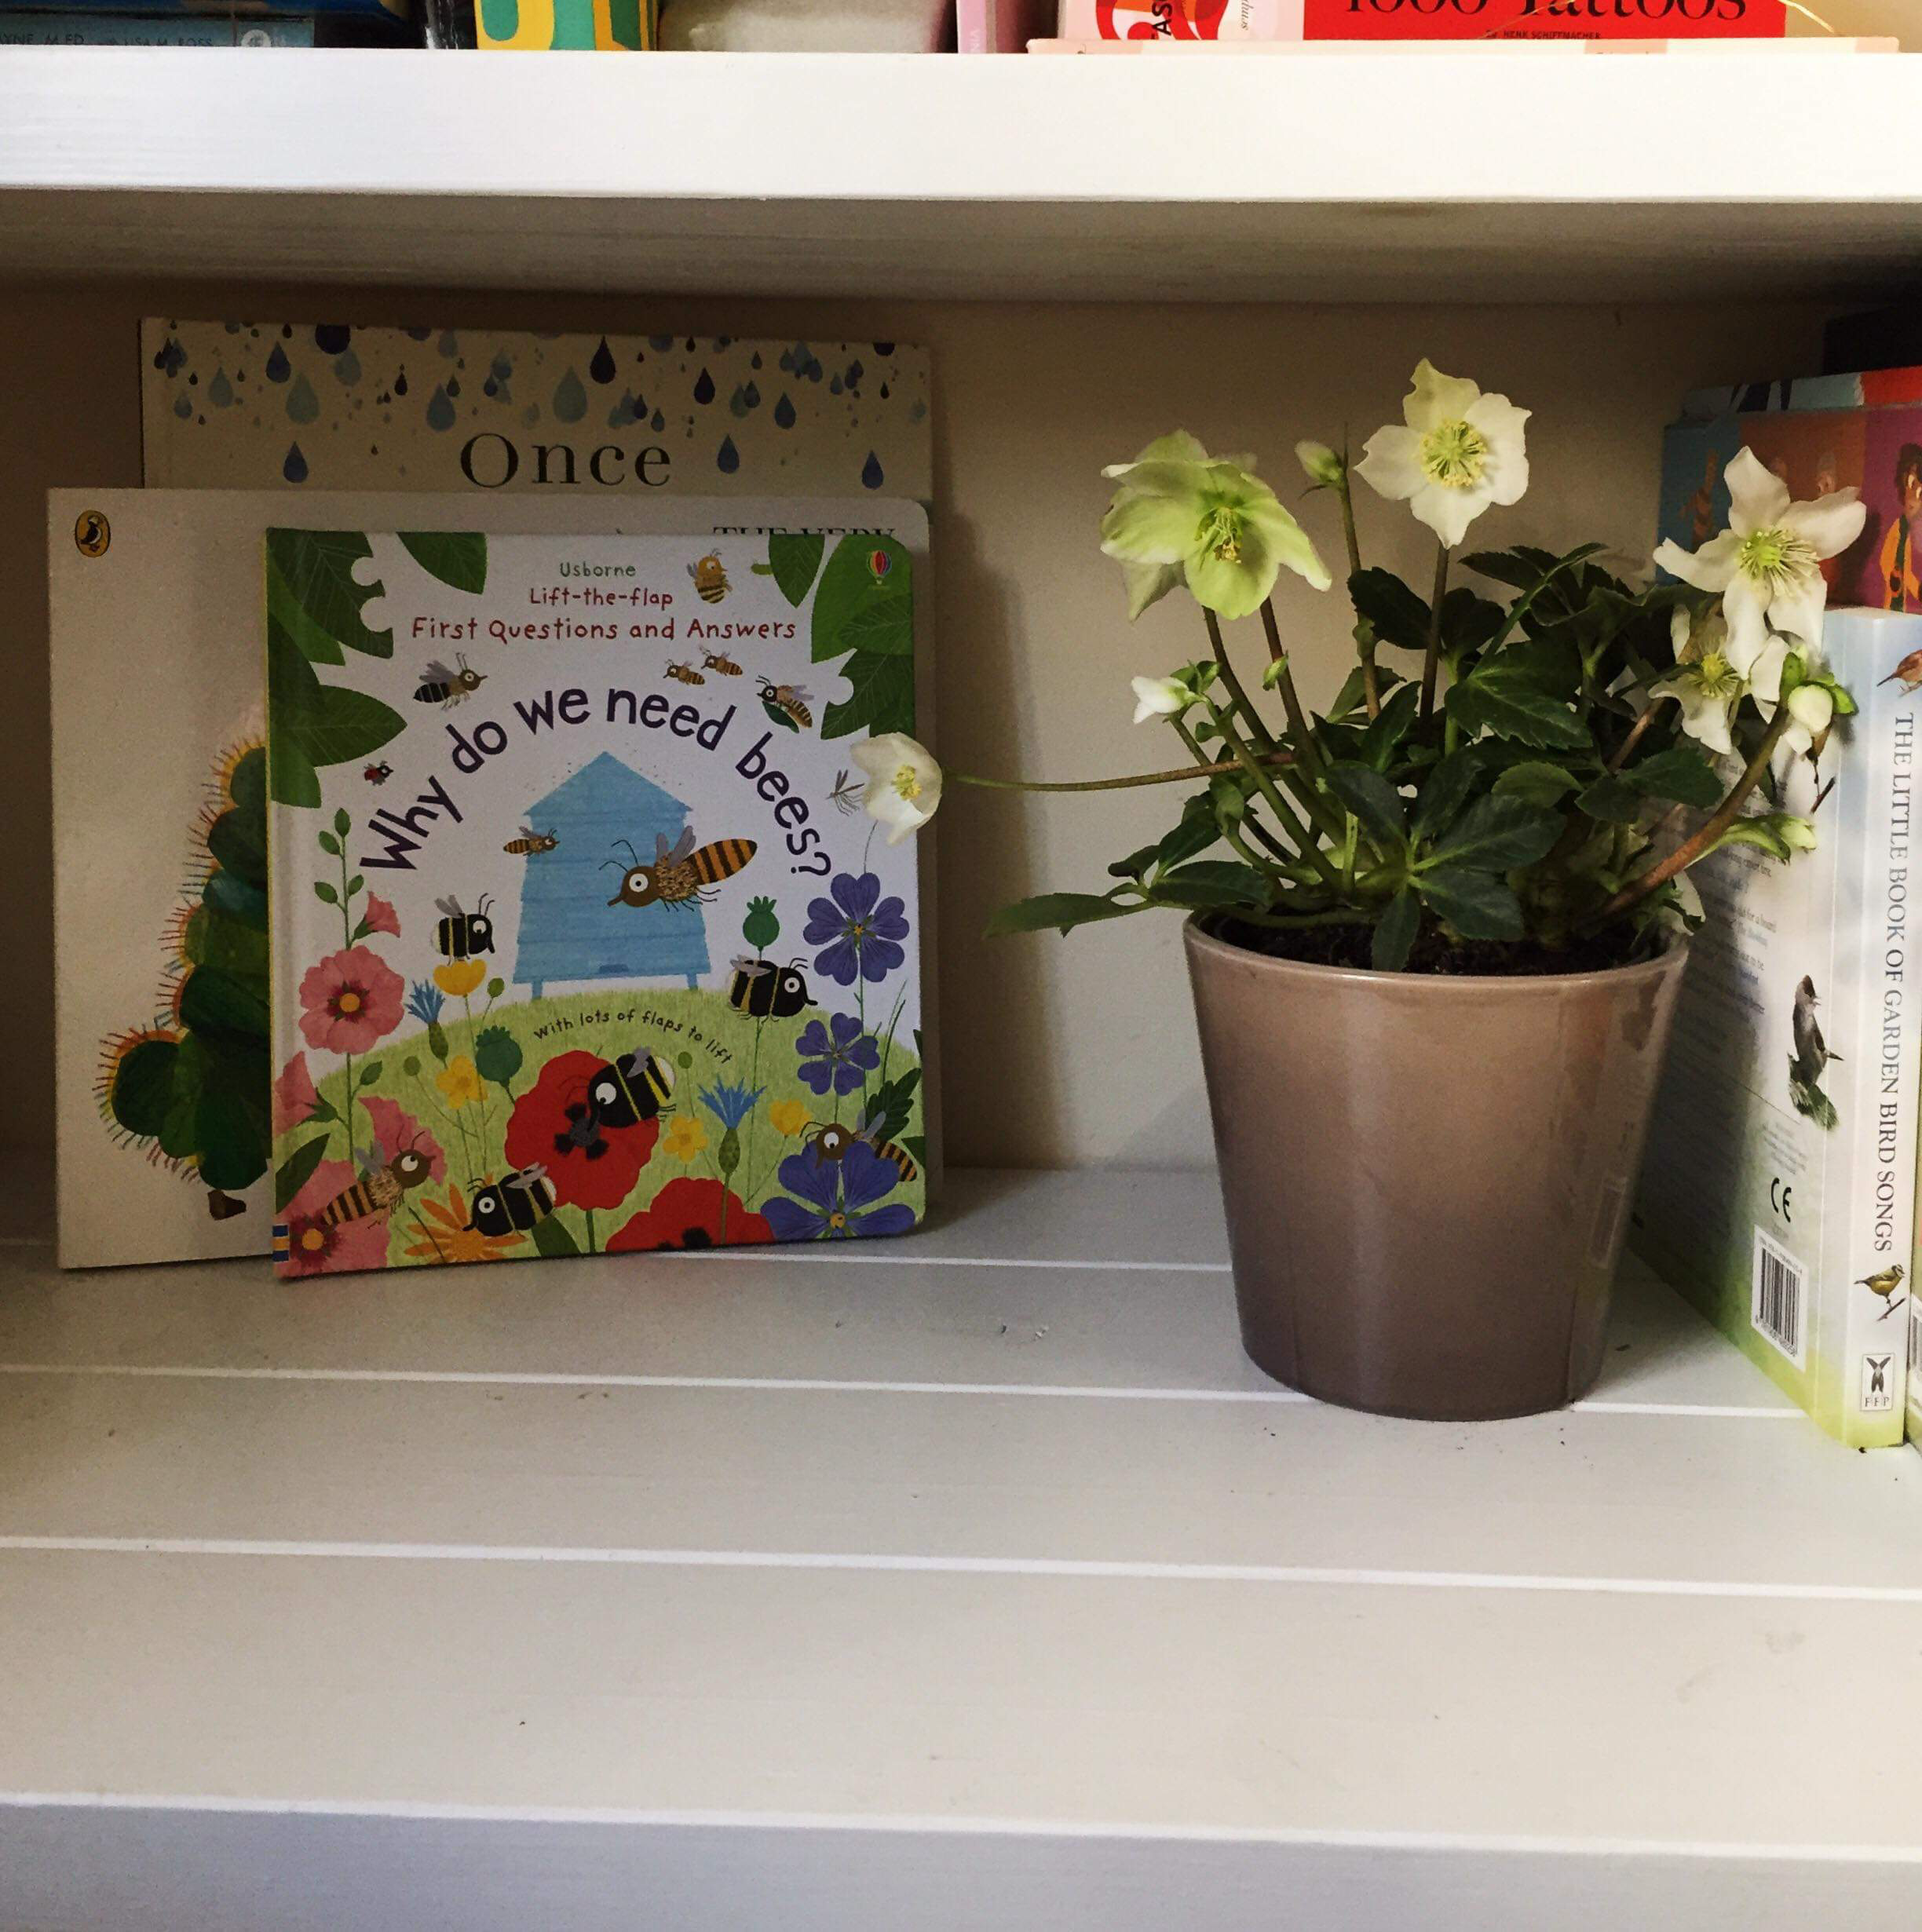 On our book shelves we have a plant in bloom for the month, and a few seasonal books. I think over spring we may plant some grass or cress in a pot to play with, or maybe a few bulbs to grow together.